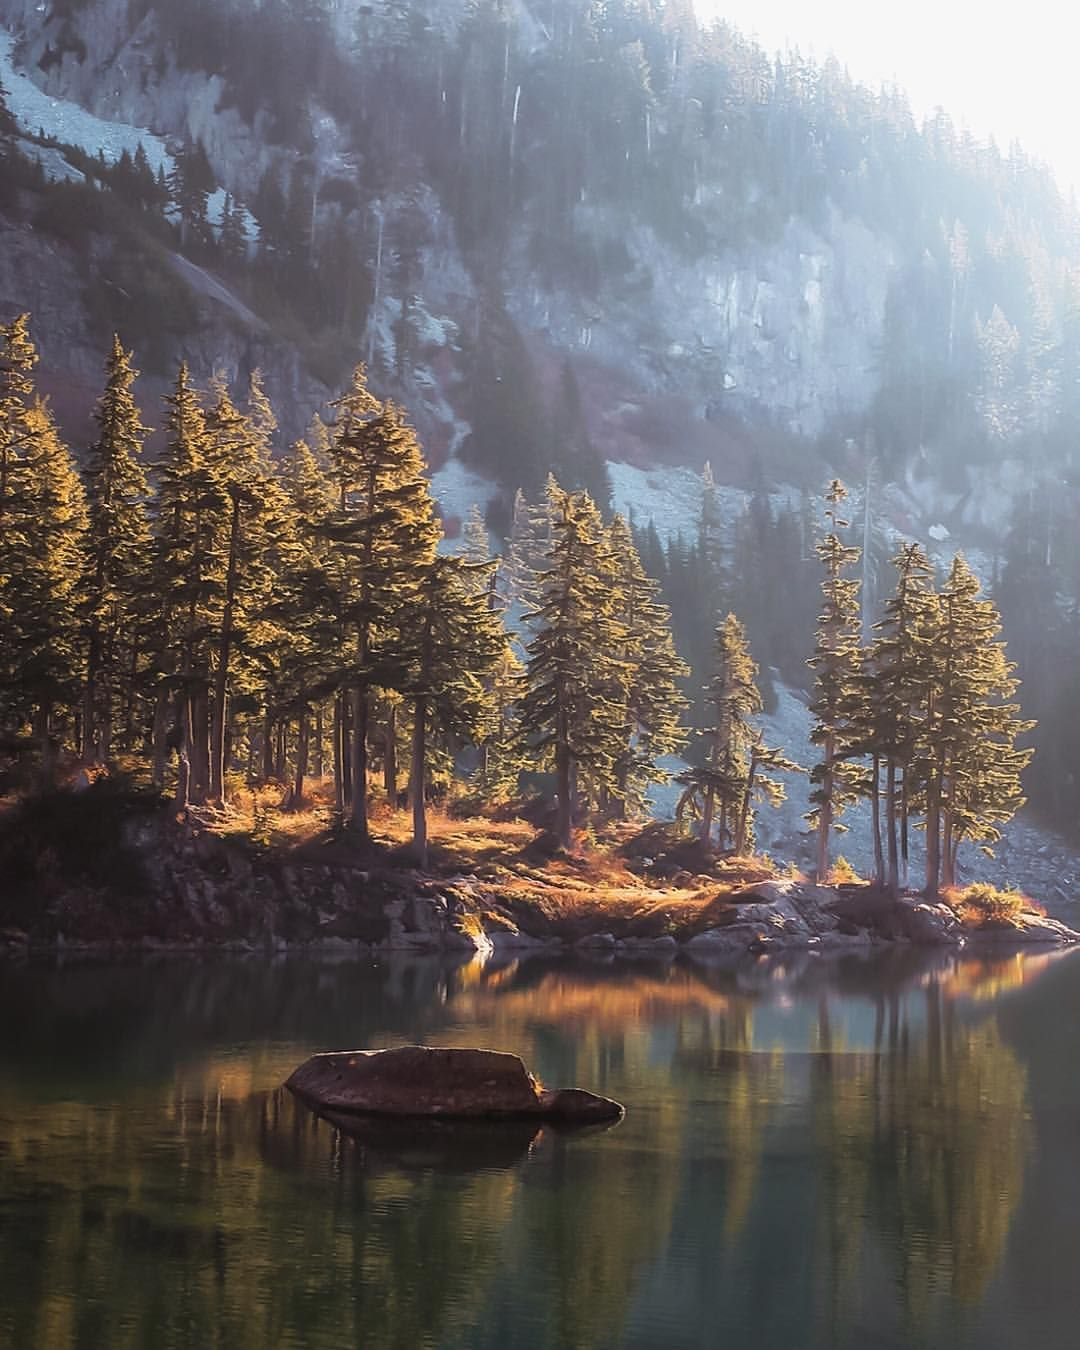 Stunning Adventure and Landscape Photography by Scott Kranz